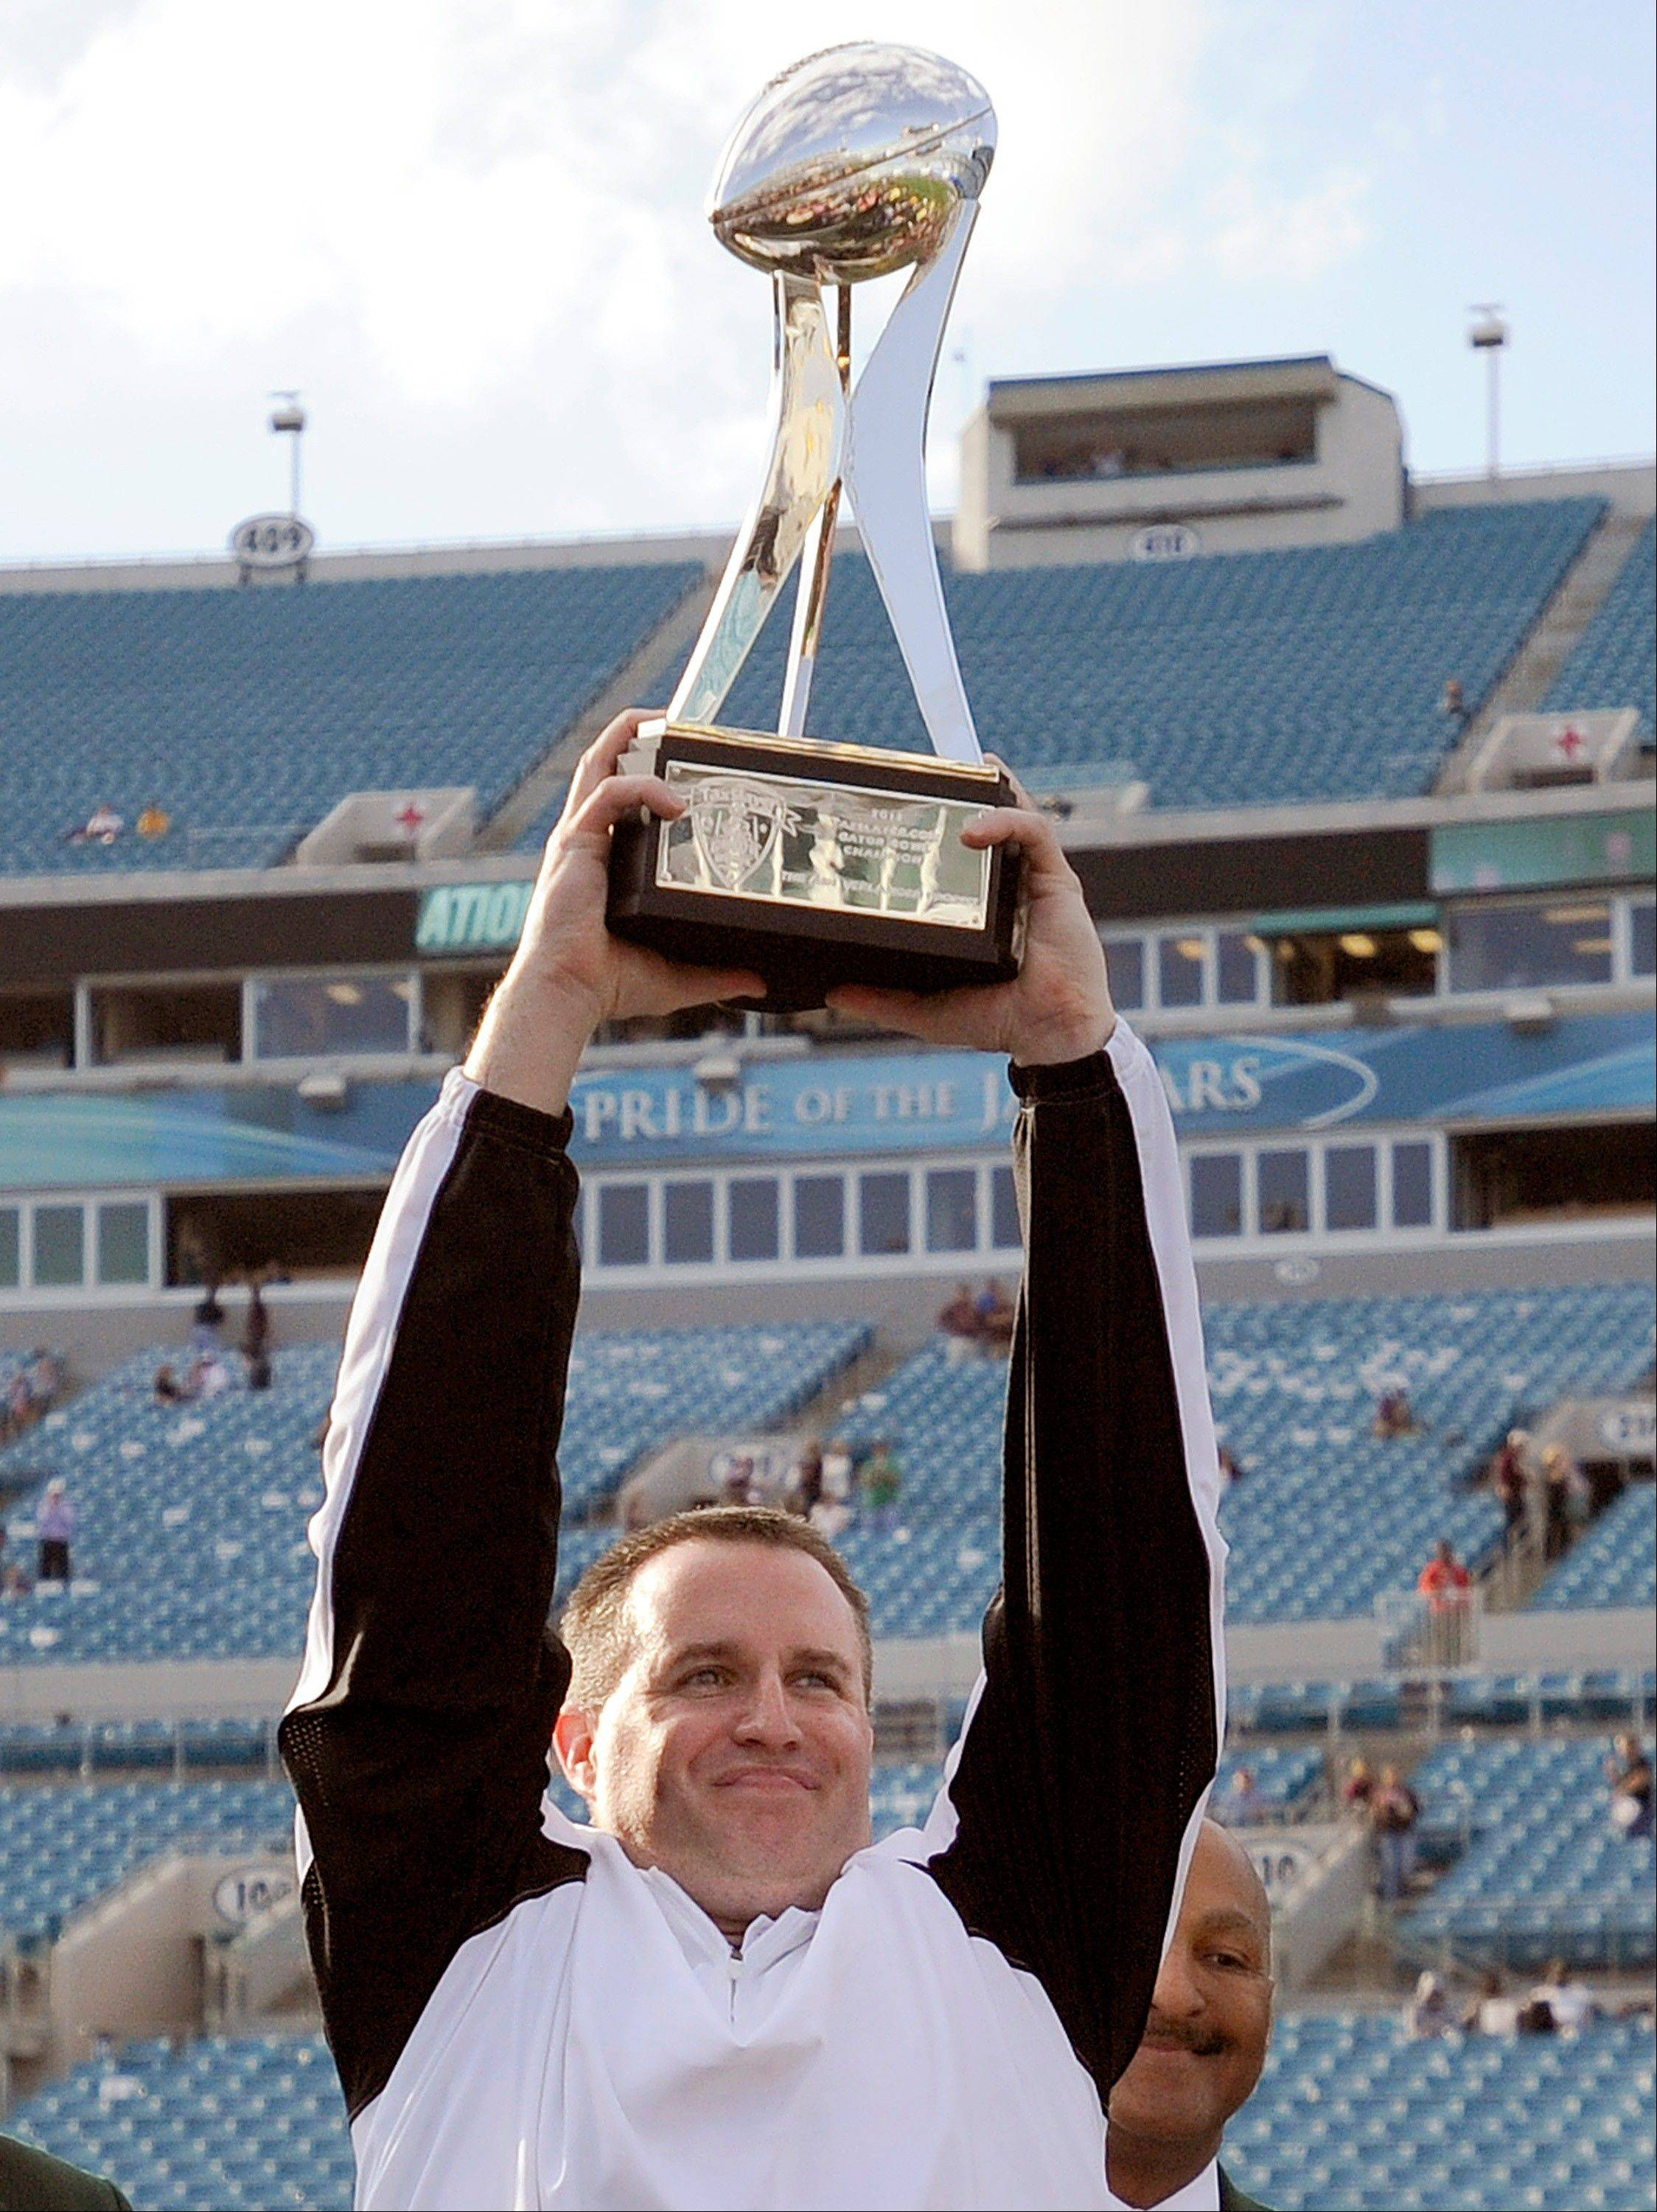 Northwestern head coach Pat Fitzgerald celebrates with the trophy after their 34-20 win over Mississippi State in the Gator Bowl NCAA college football game, Tuesday, Jan. 1, 2013 in Jacksonville, Fla.